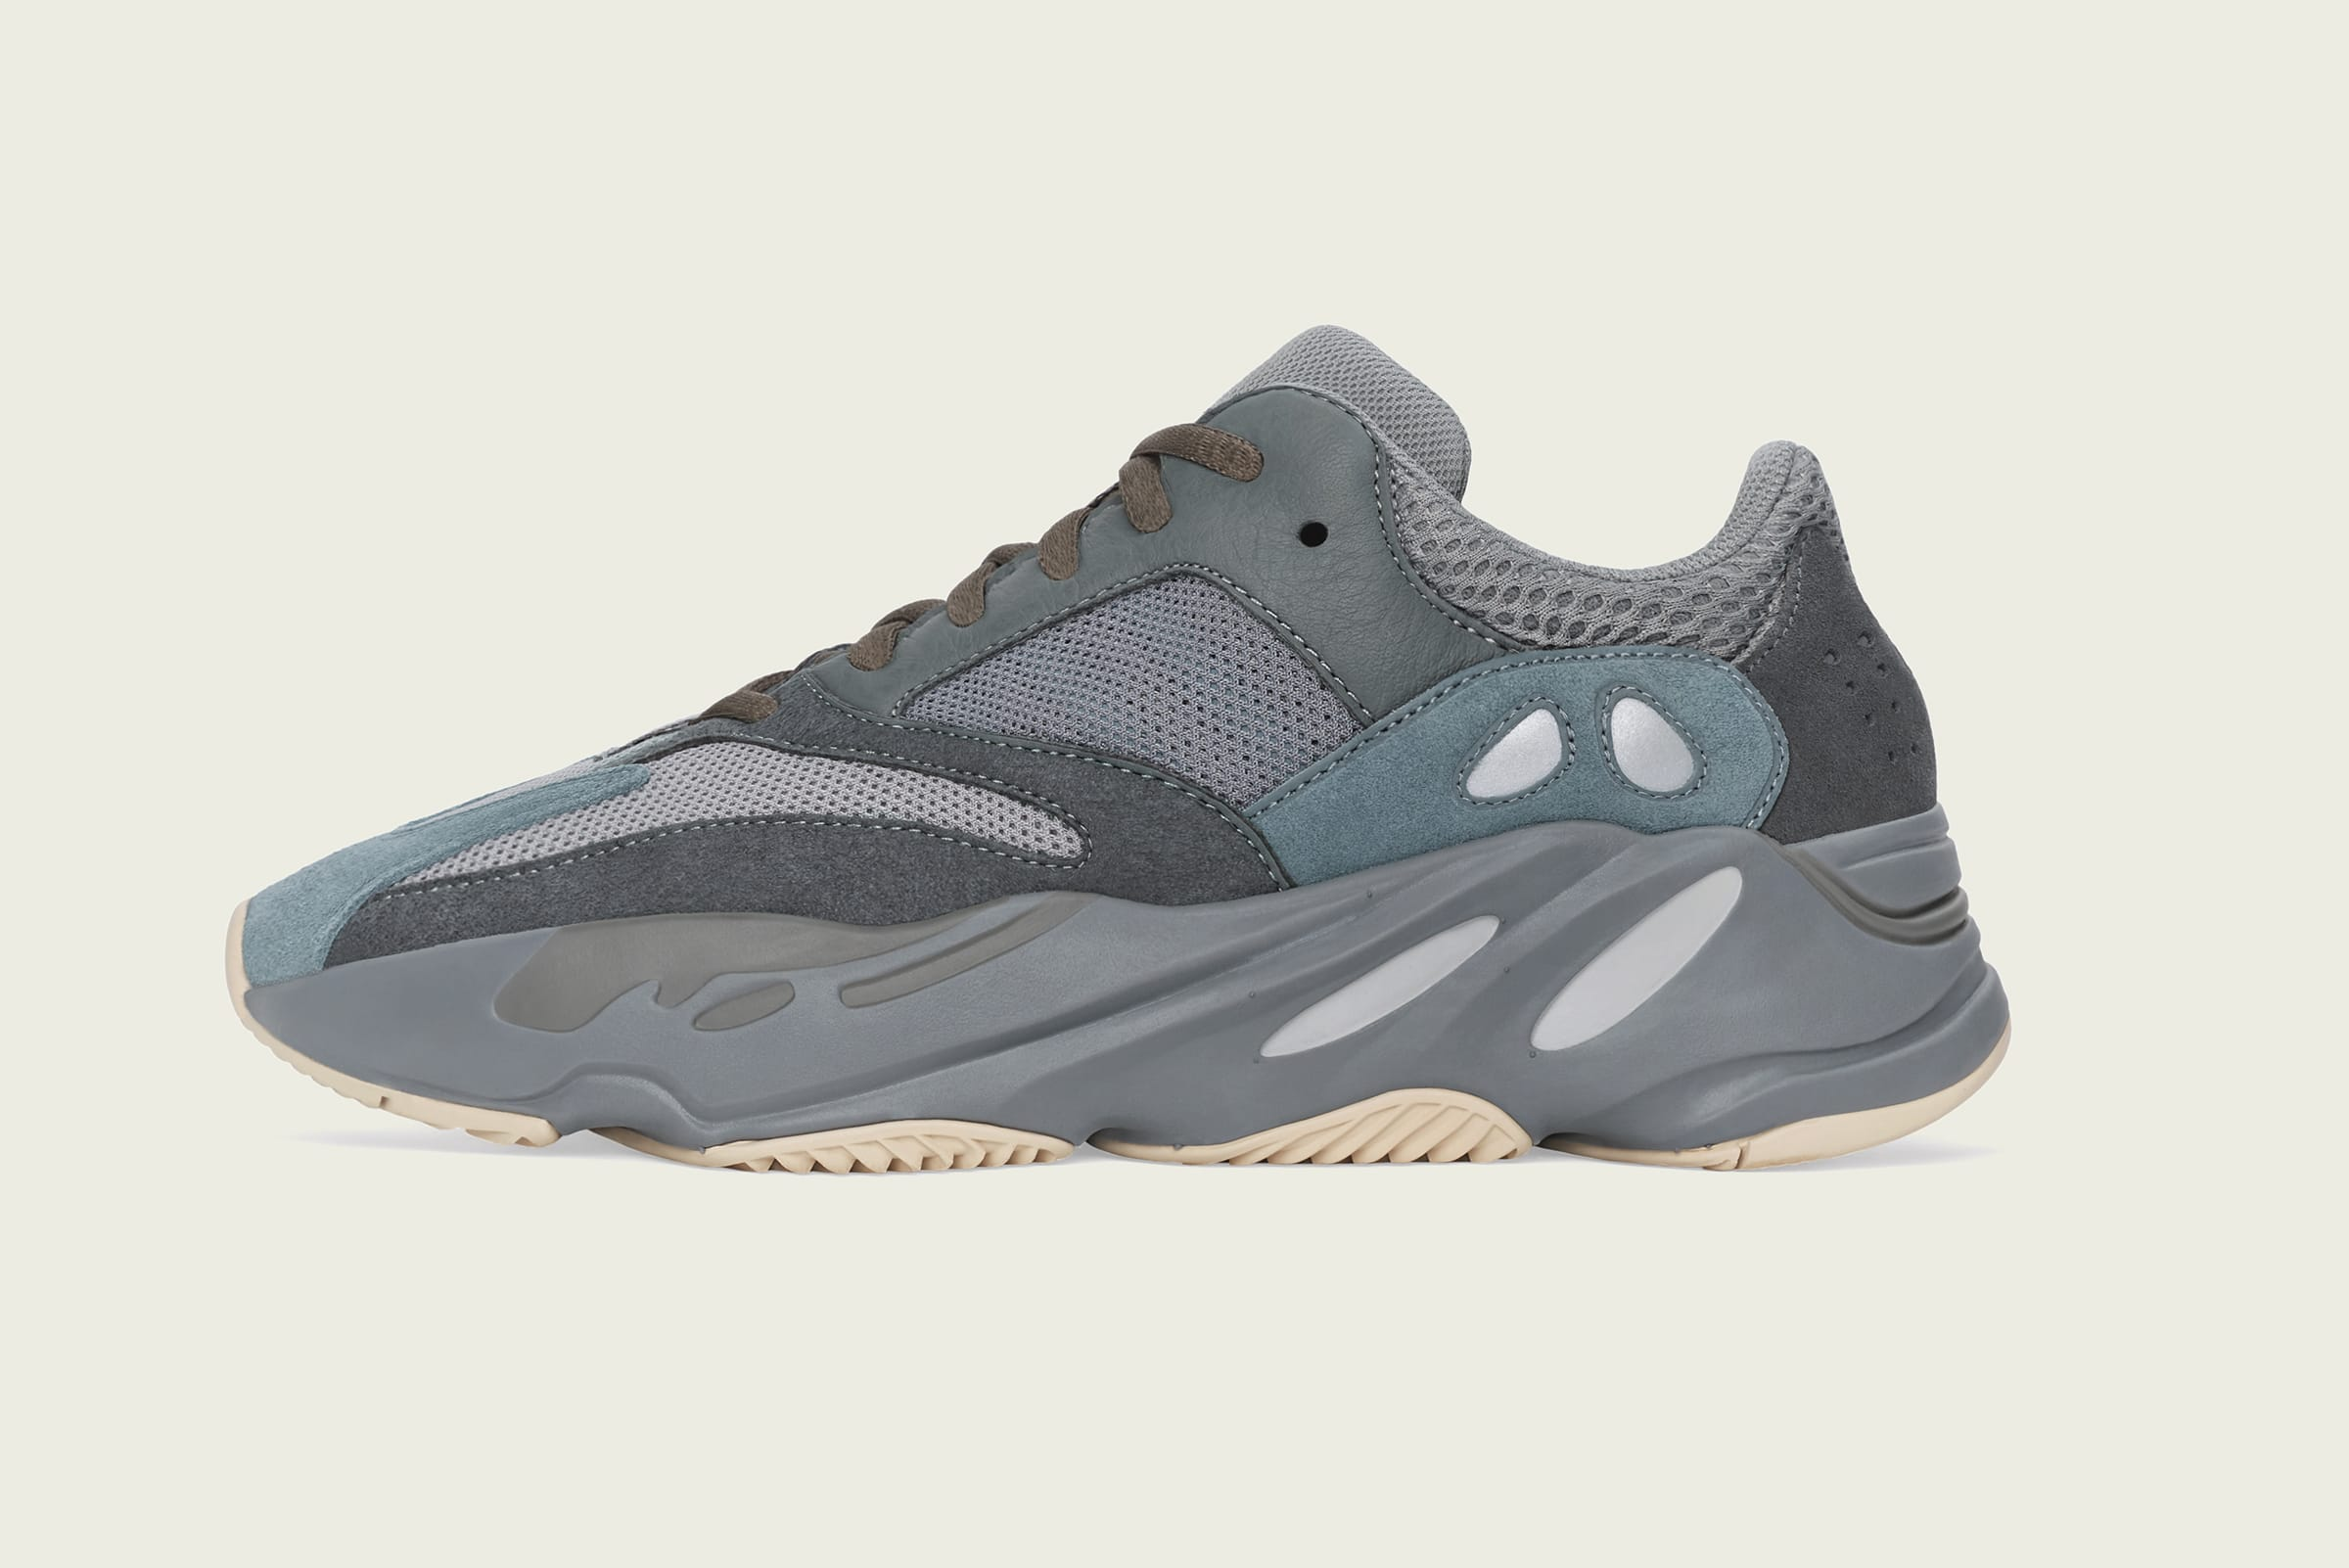 END. Features adidas YEEZY Boost 700 v1 'Teal Blue' title =  adidas YEEZY Boost 700 v1 'Teal Blue